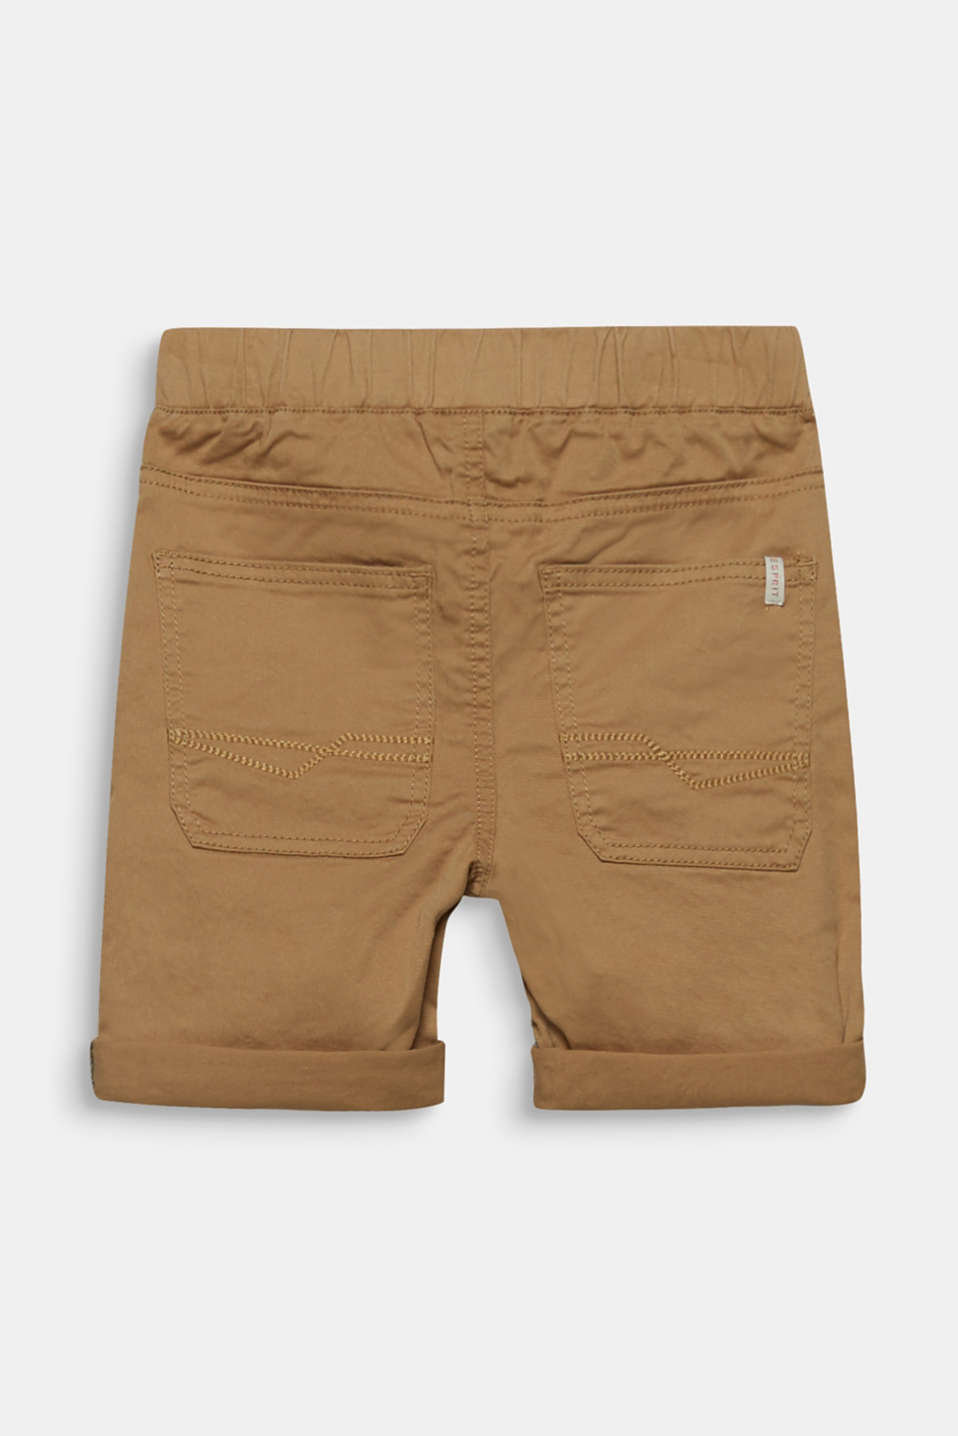 Shorts with elasticated waistband, made of stretch cotton